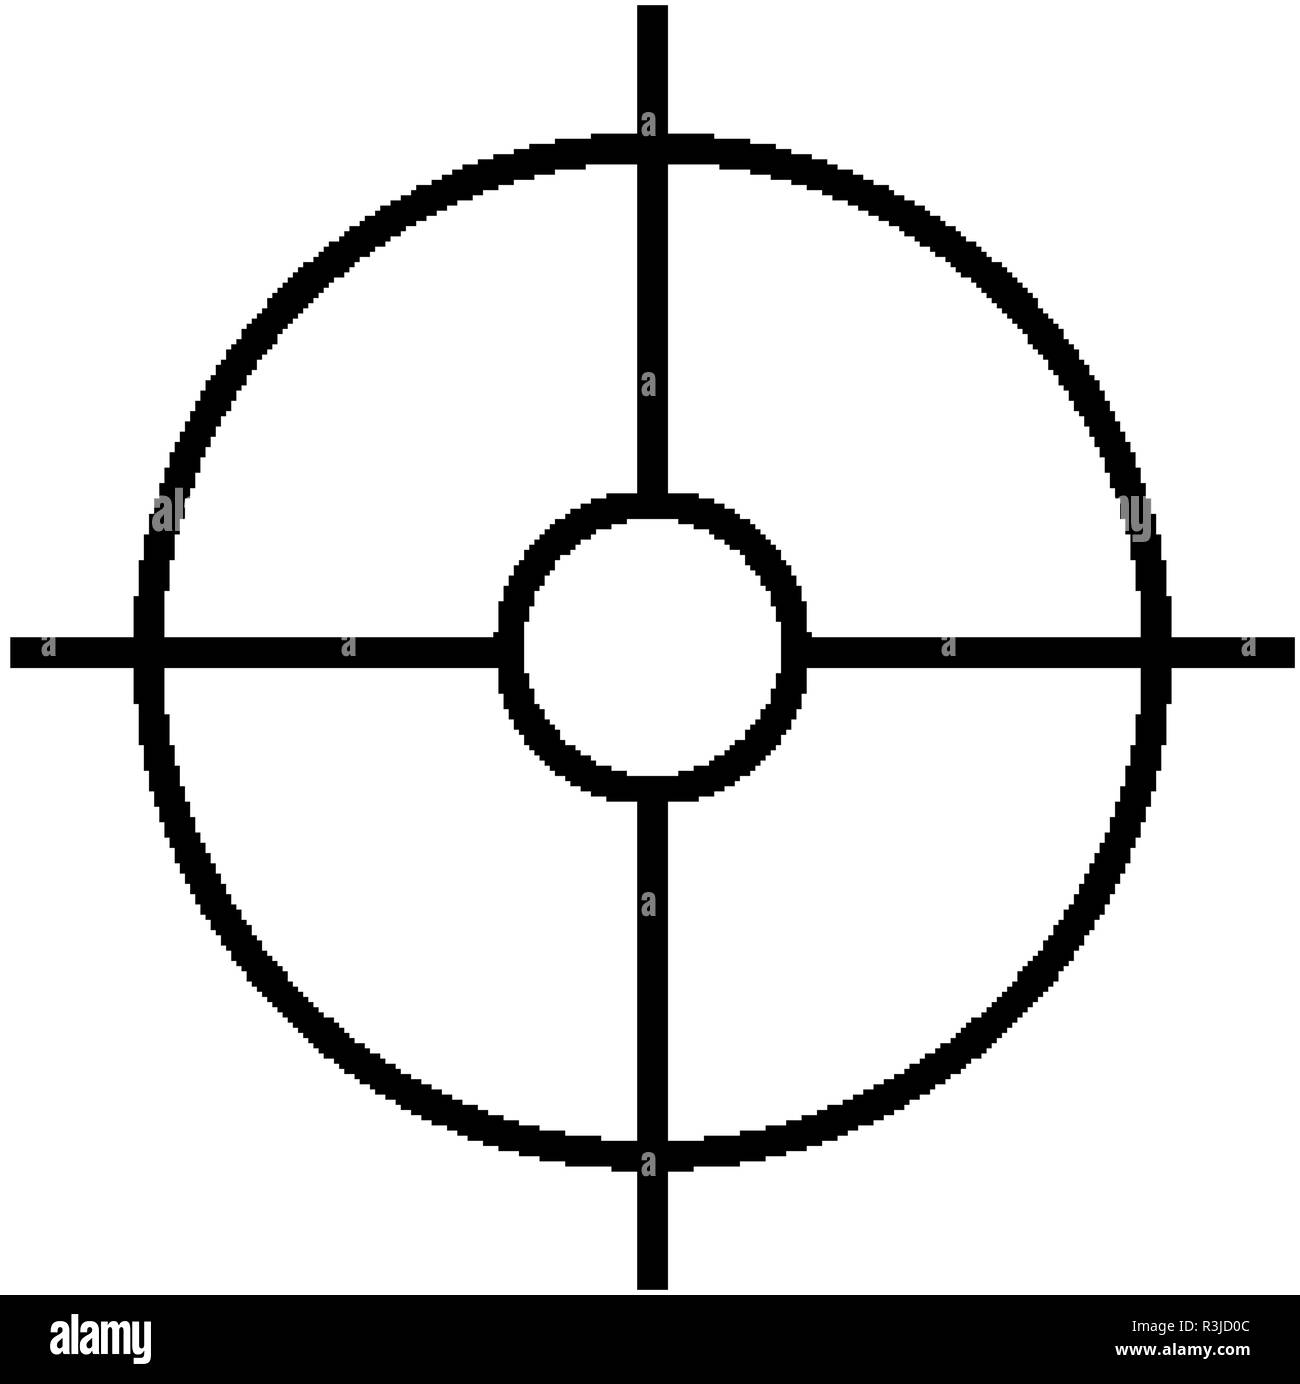 Military sniper rifle scope collimator sight icon Stock Vector